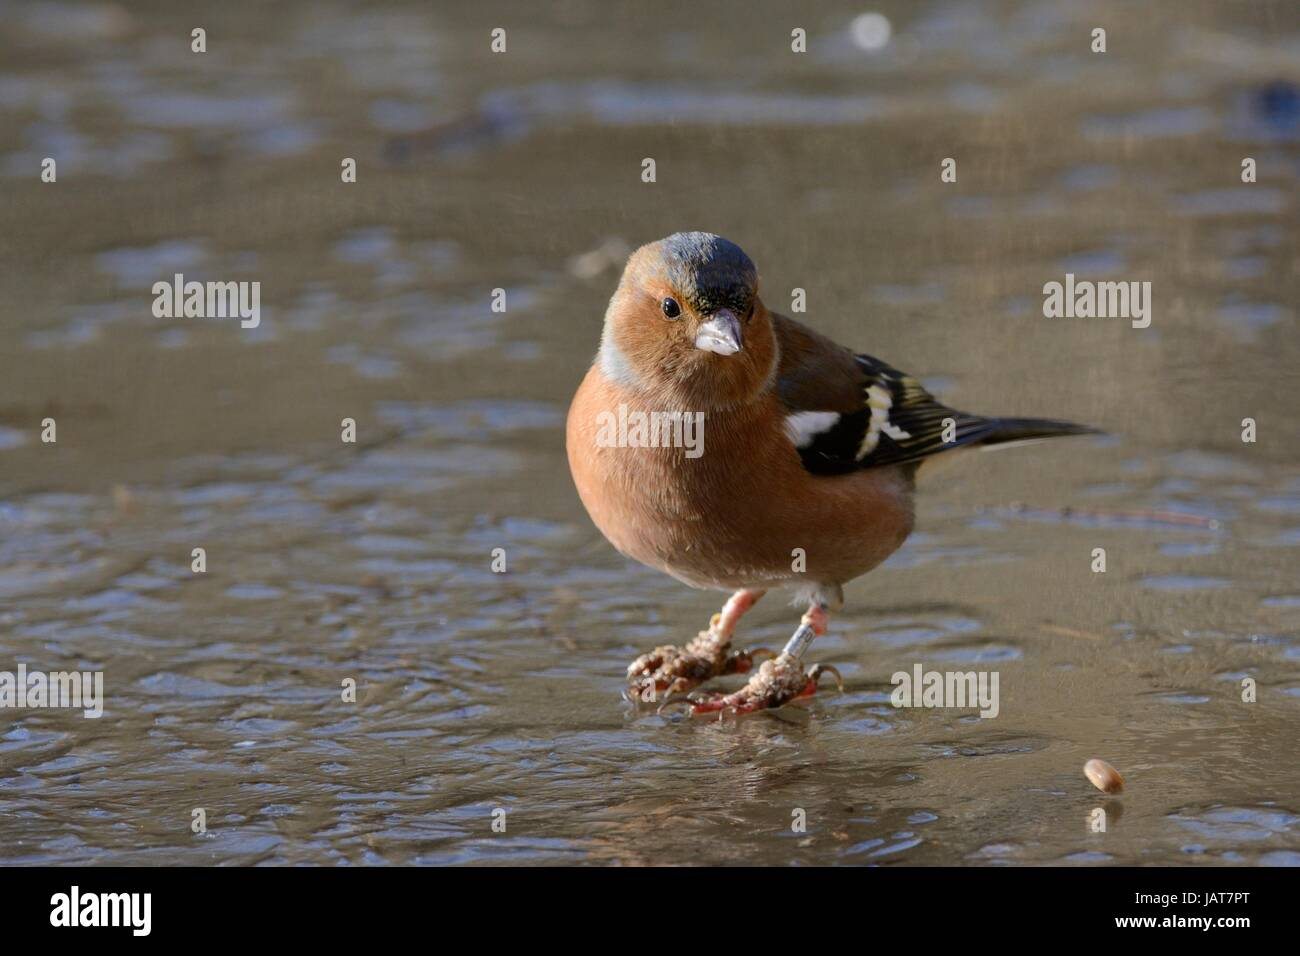 Male Chaffinch (Fringilla coelebs) standing on ice with 'bumblefoot' or 'scaly leg' warty outgrowths - Stock Image